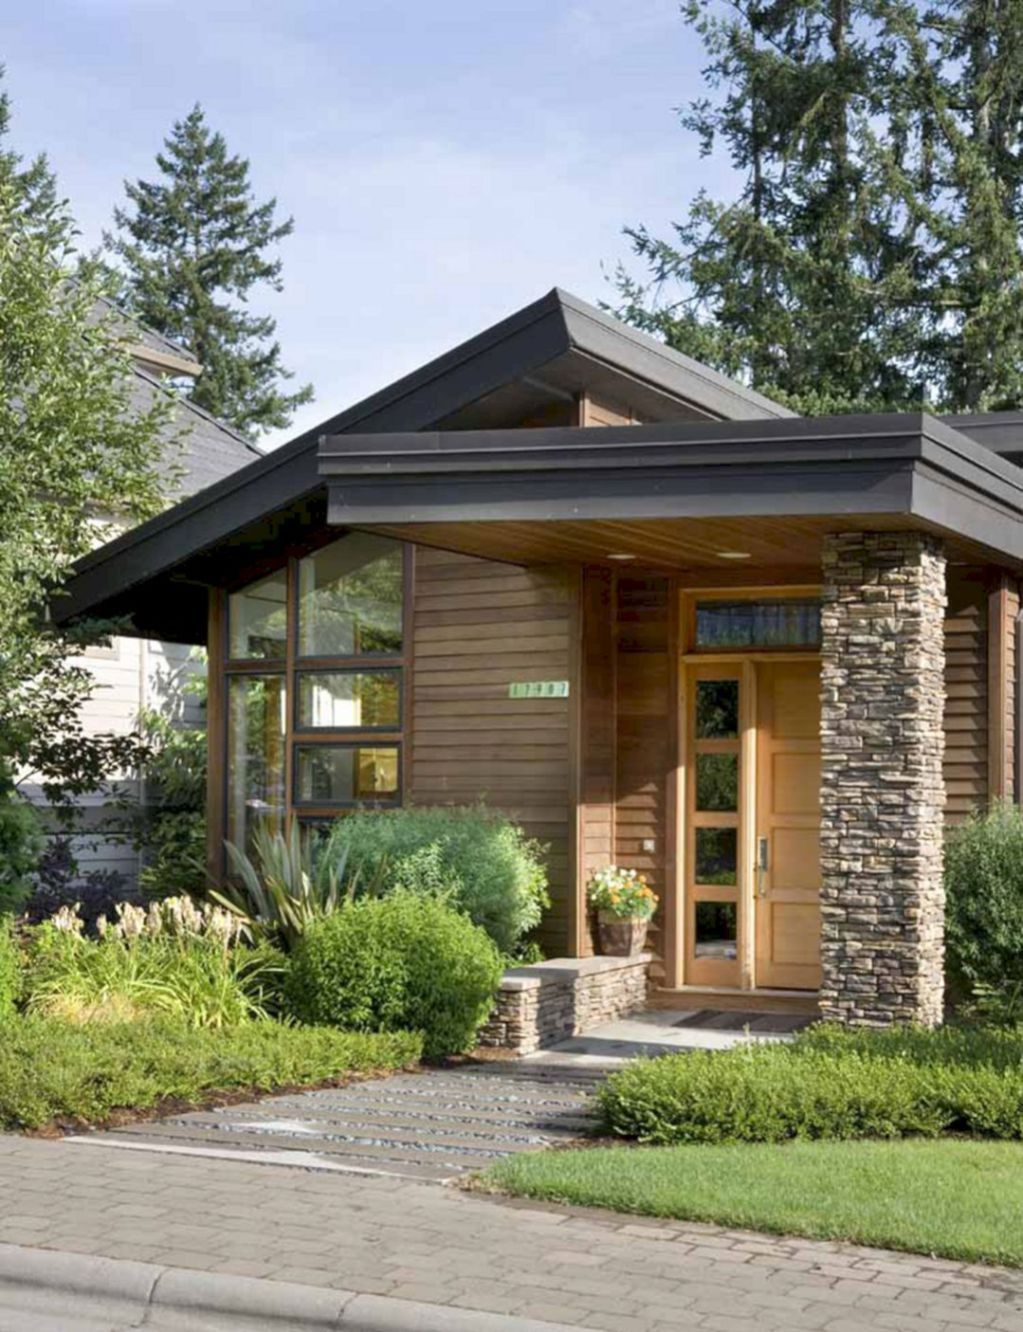 The Best Modern Tiny House Design Small Homes Inspirations No 38